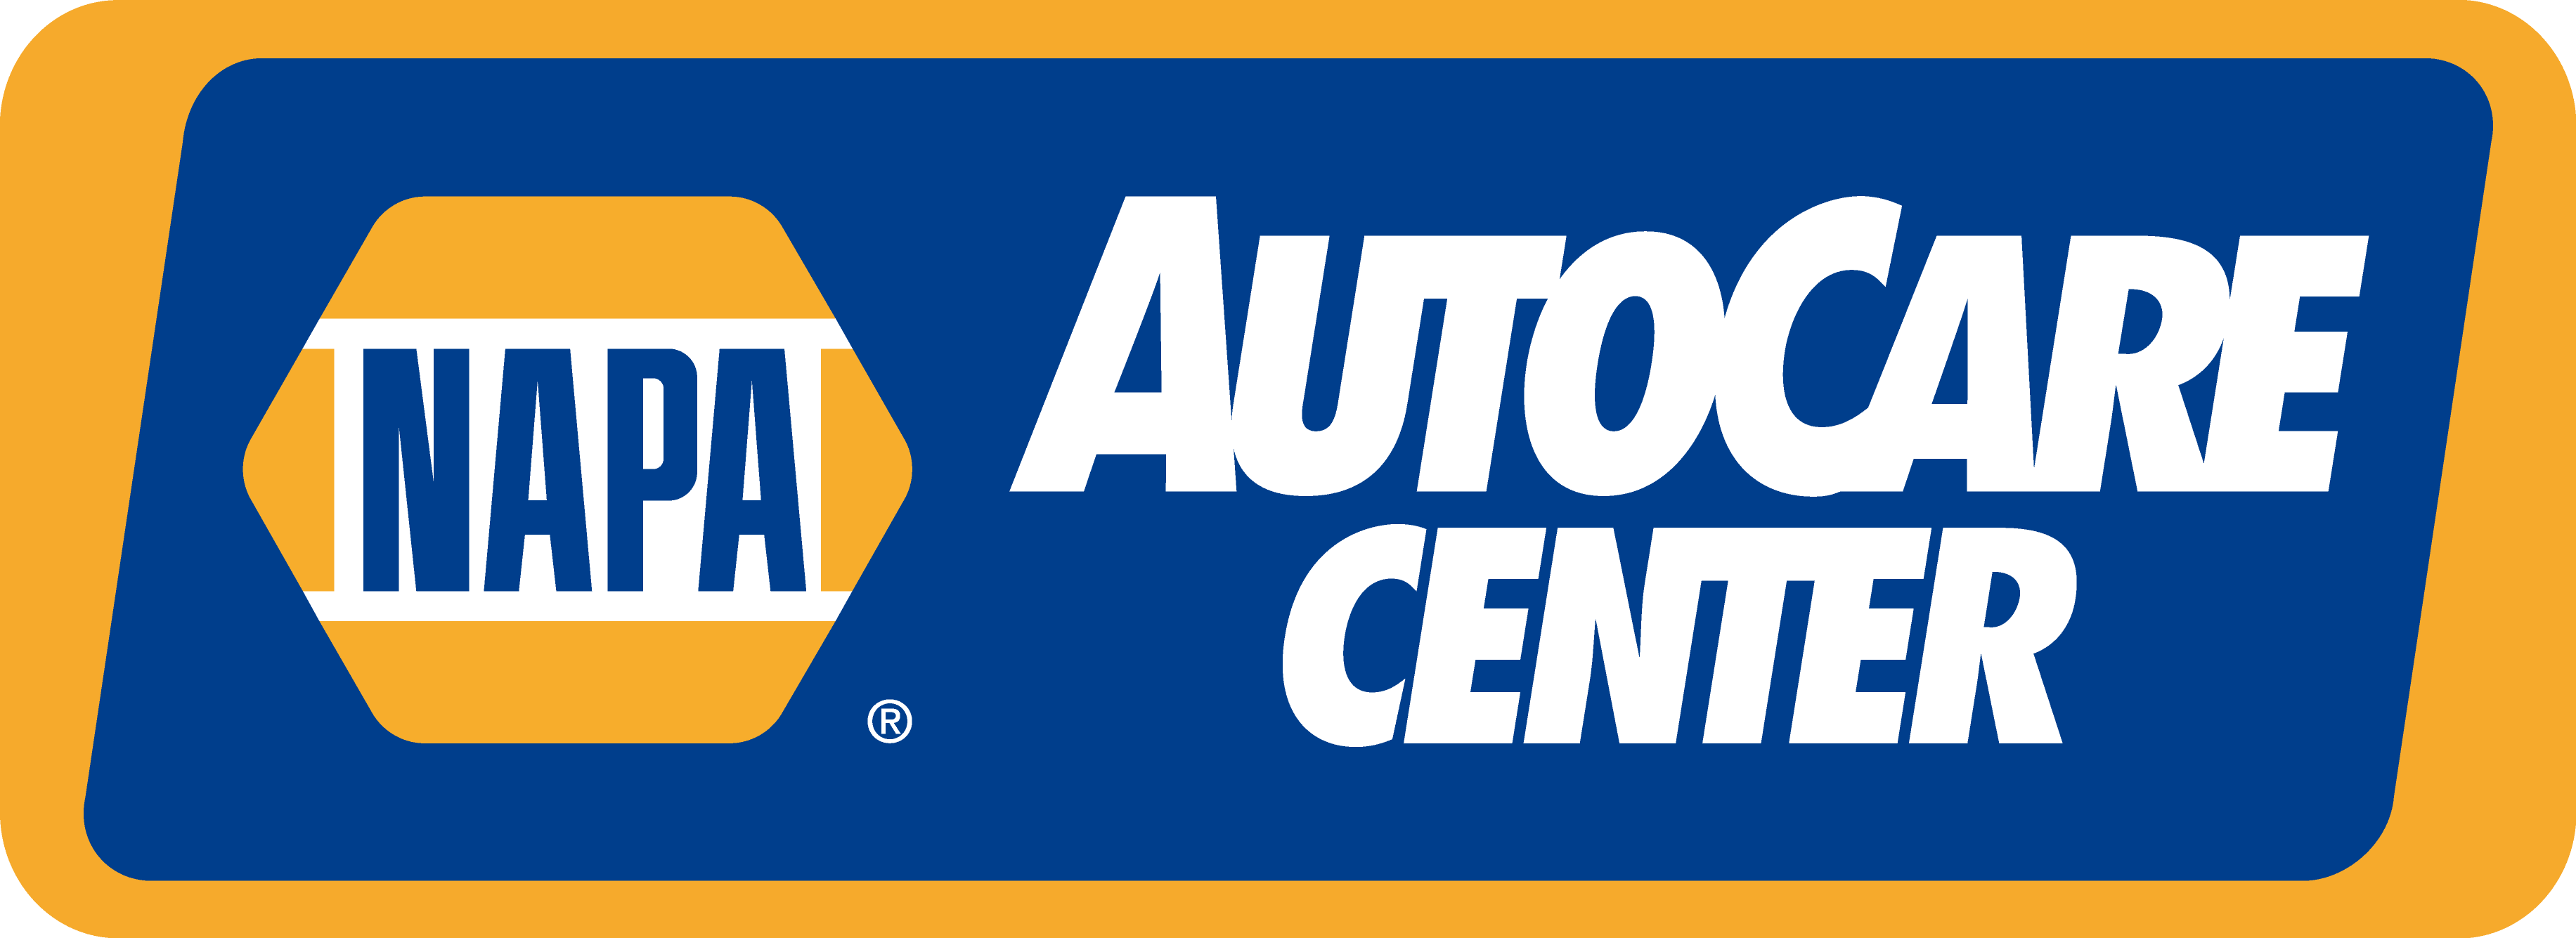 NAPA Auto Care Center, Brians Automotive And Diagnostics, Escondido, CA, 92025